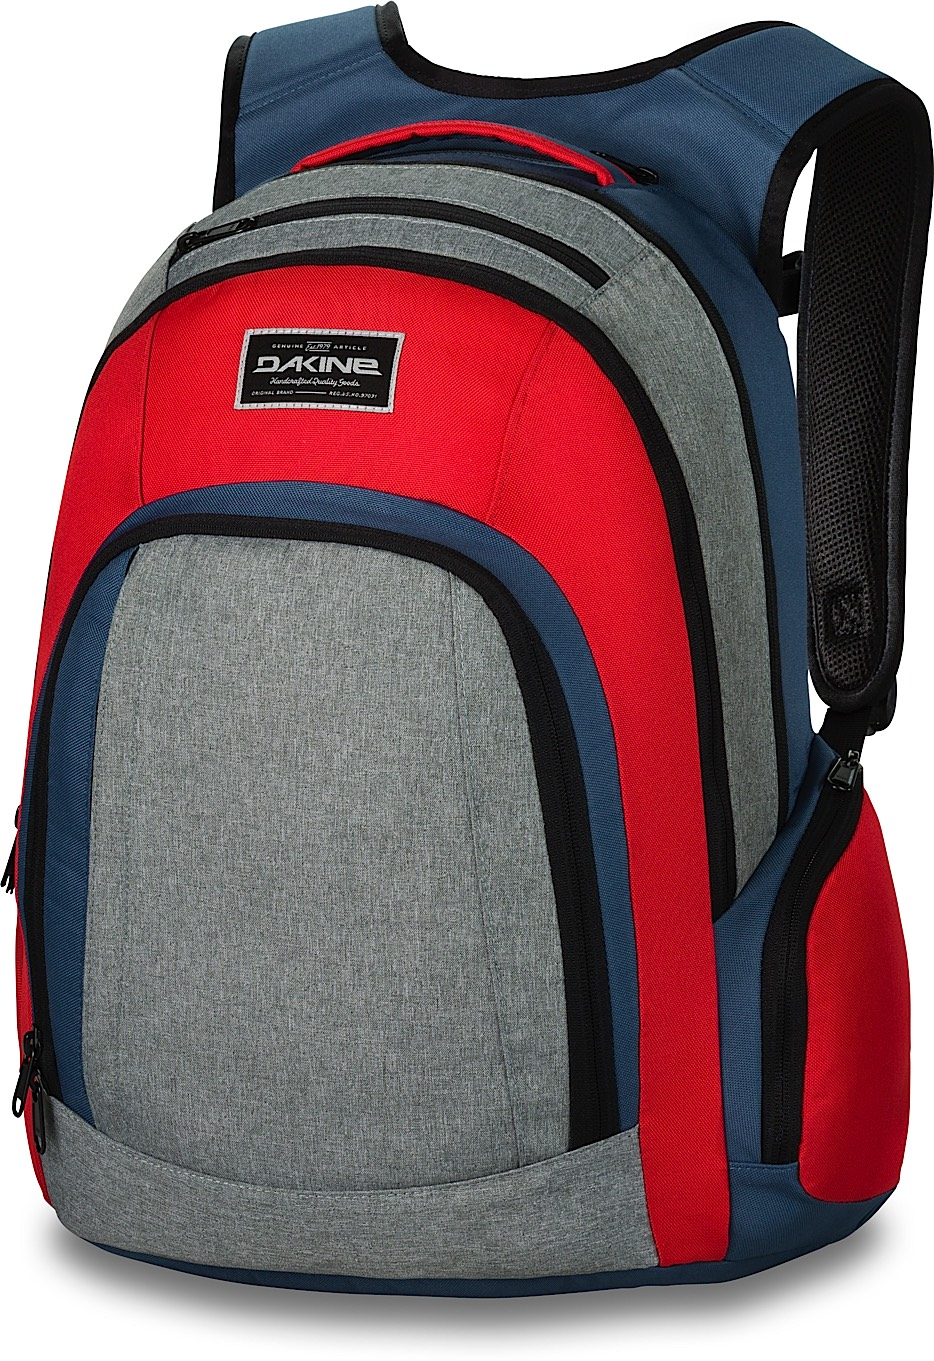 dakine 101 29l sommer 2015 street pack rucksack tablet laptoptasche 8130030 ebay. Black Bedroom Furniture Sets. Home Design Ideas